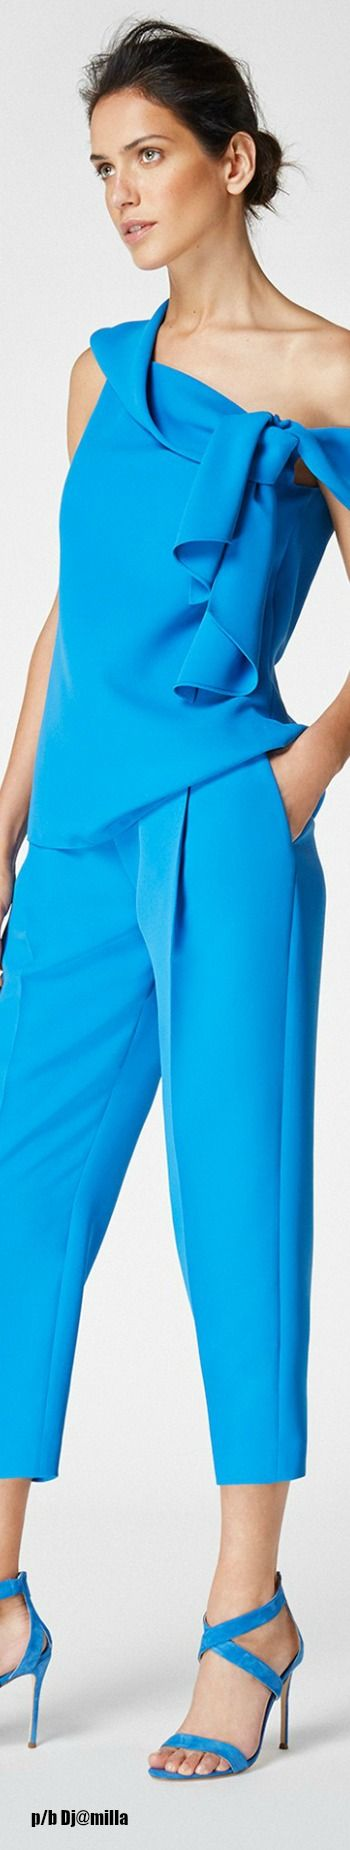 Carolina Herrera - Resort 2017